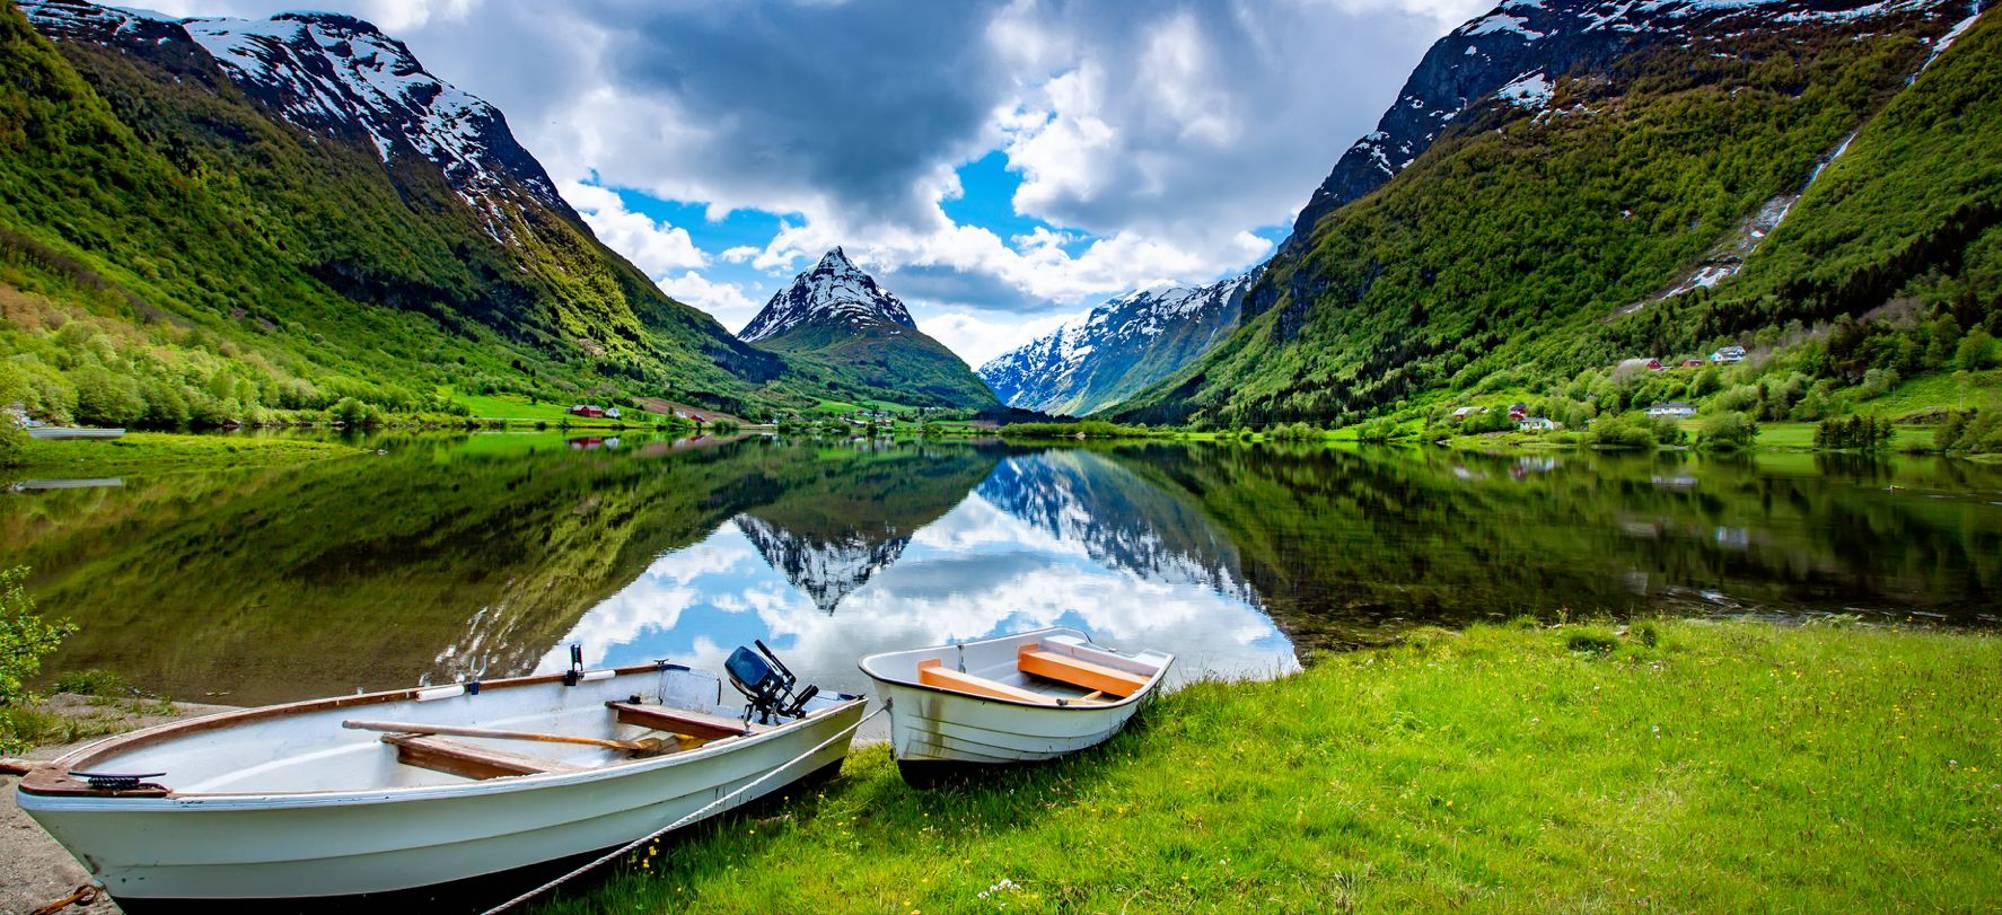 Geiranger   Beautiful Scenery In The Fjords   Itinerary Desktop